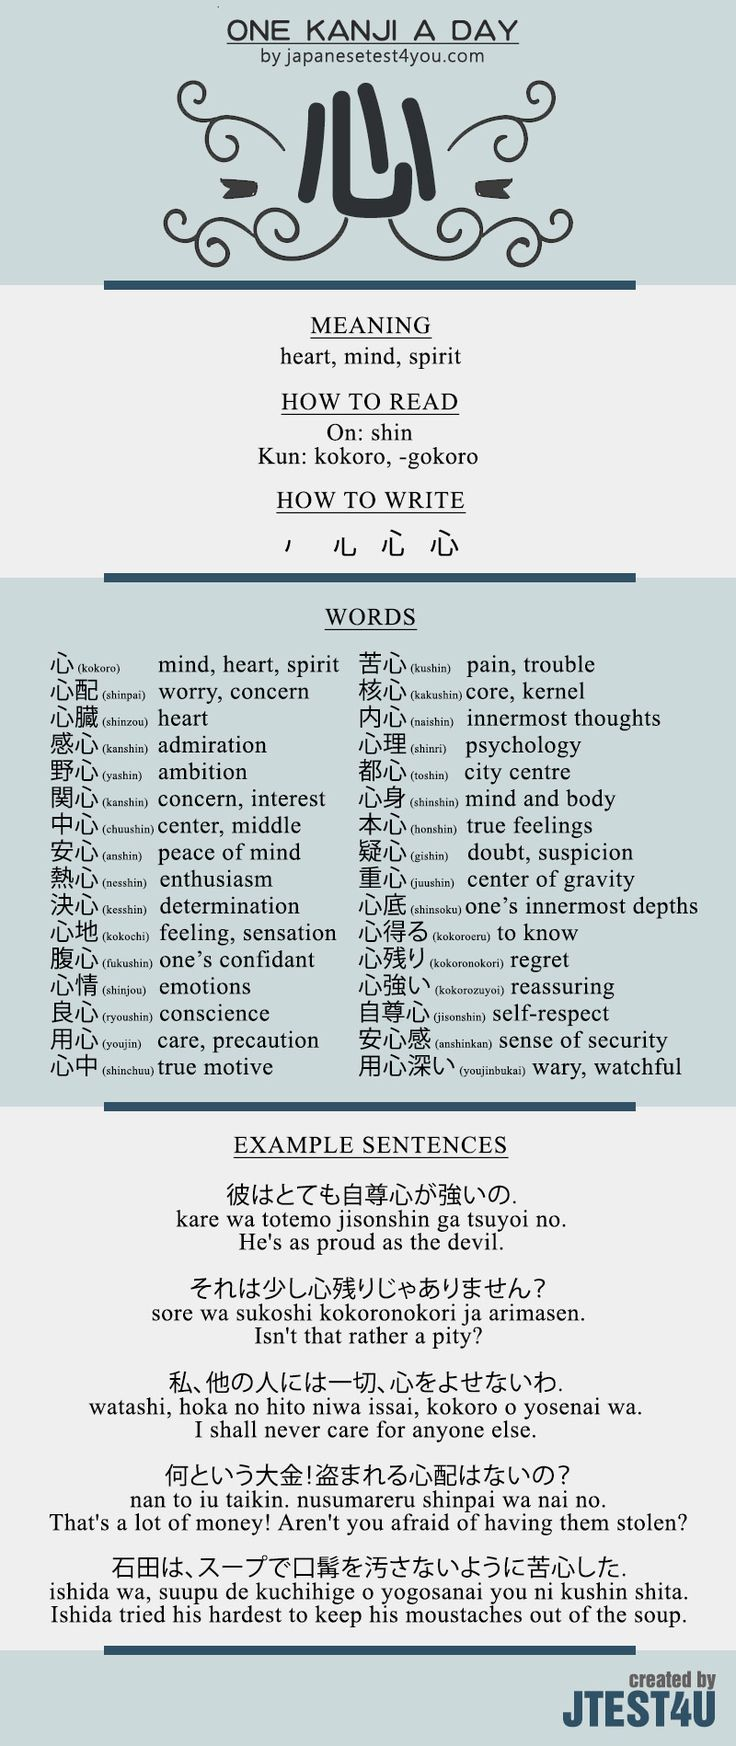 Learn one Kanji a day with infographic - 心 (shin): http://japanesetest4you.com/learn-one-kanji-a-day-with-infographic-%e5%bf%83-shin/